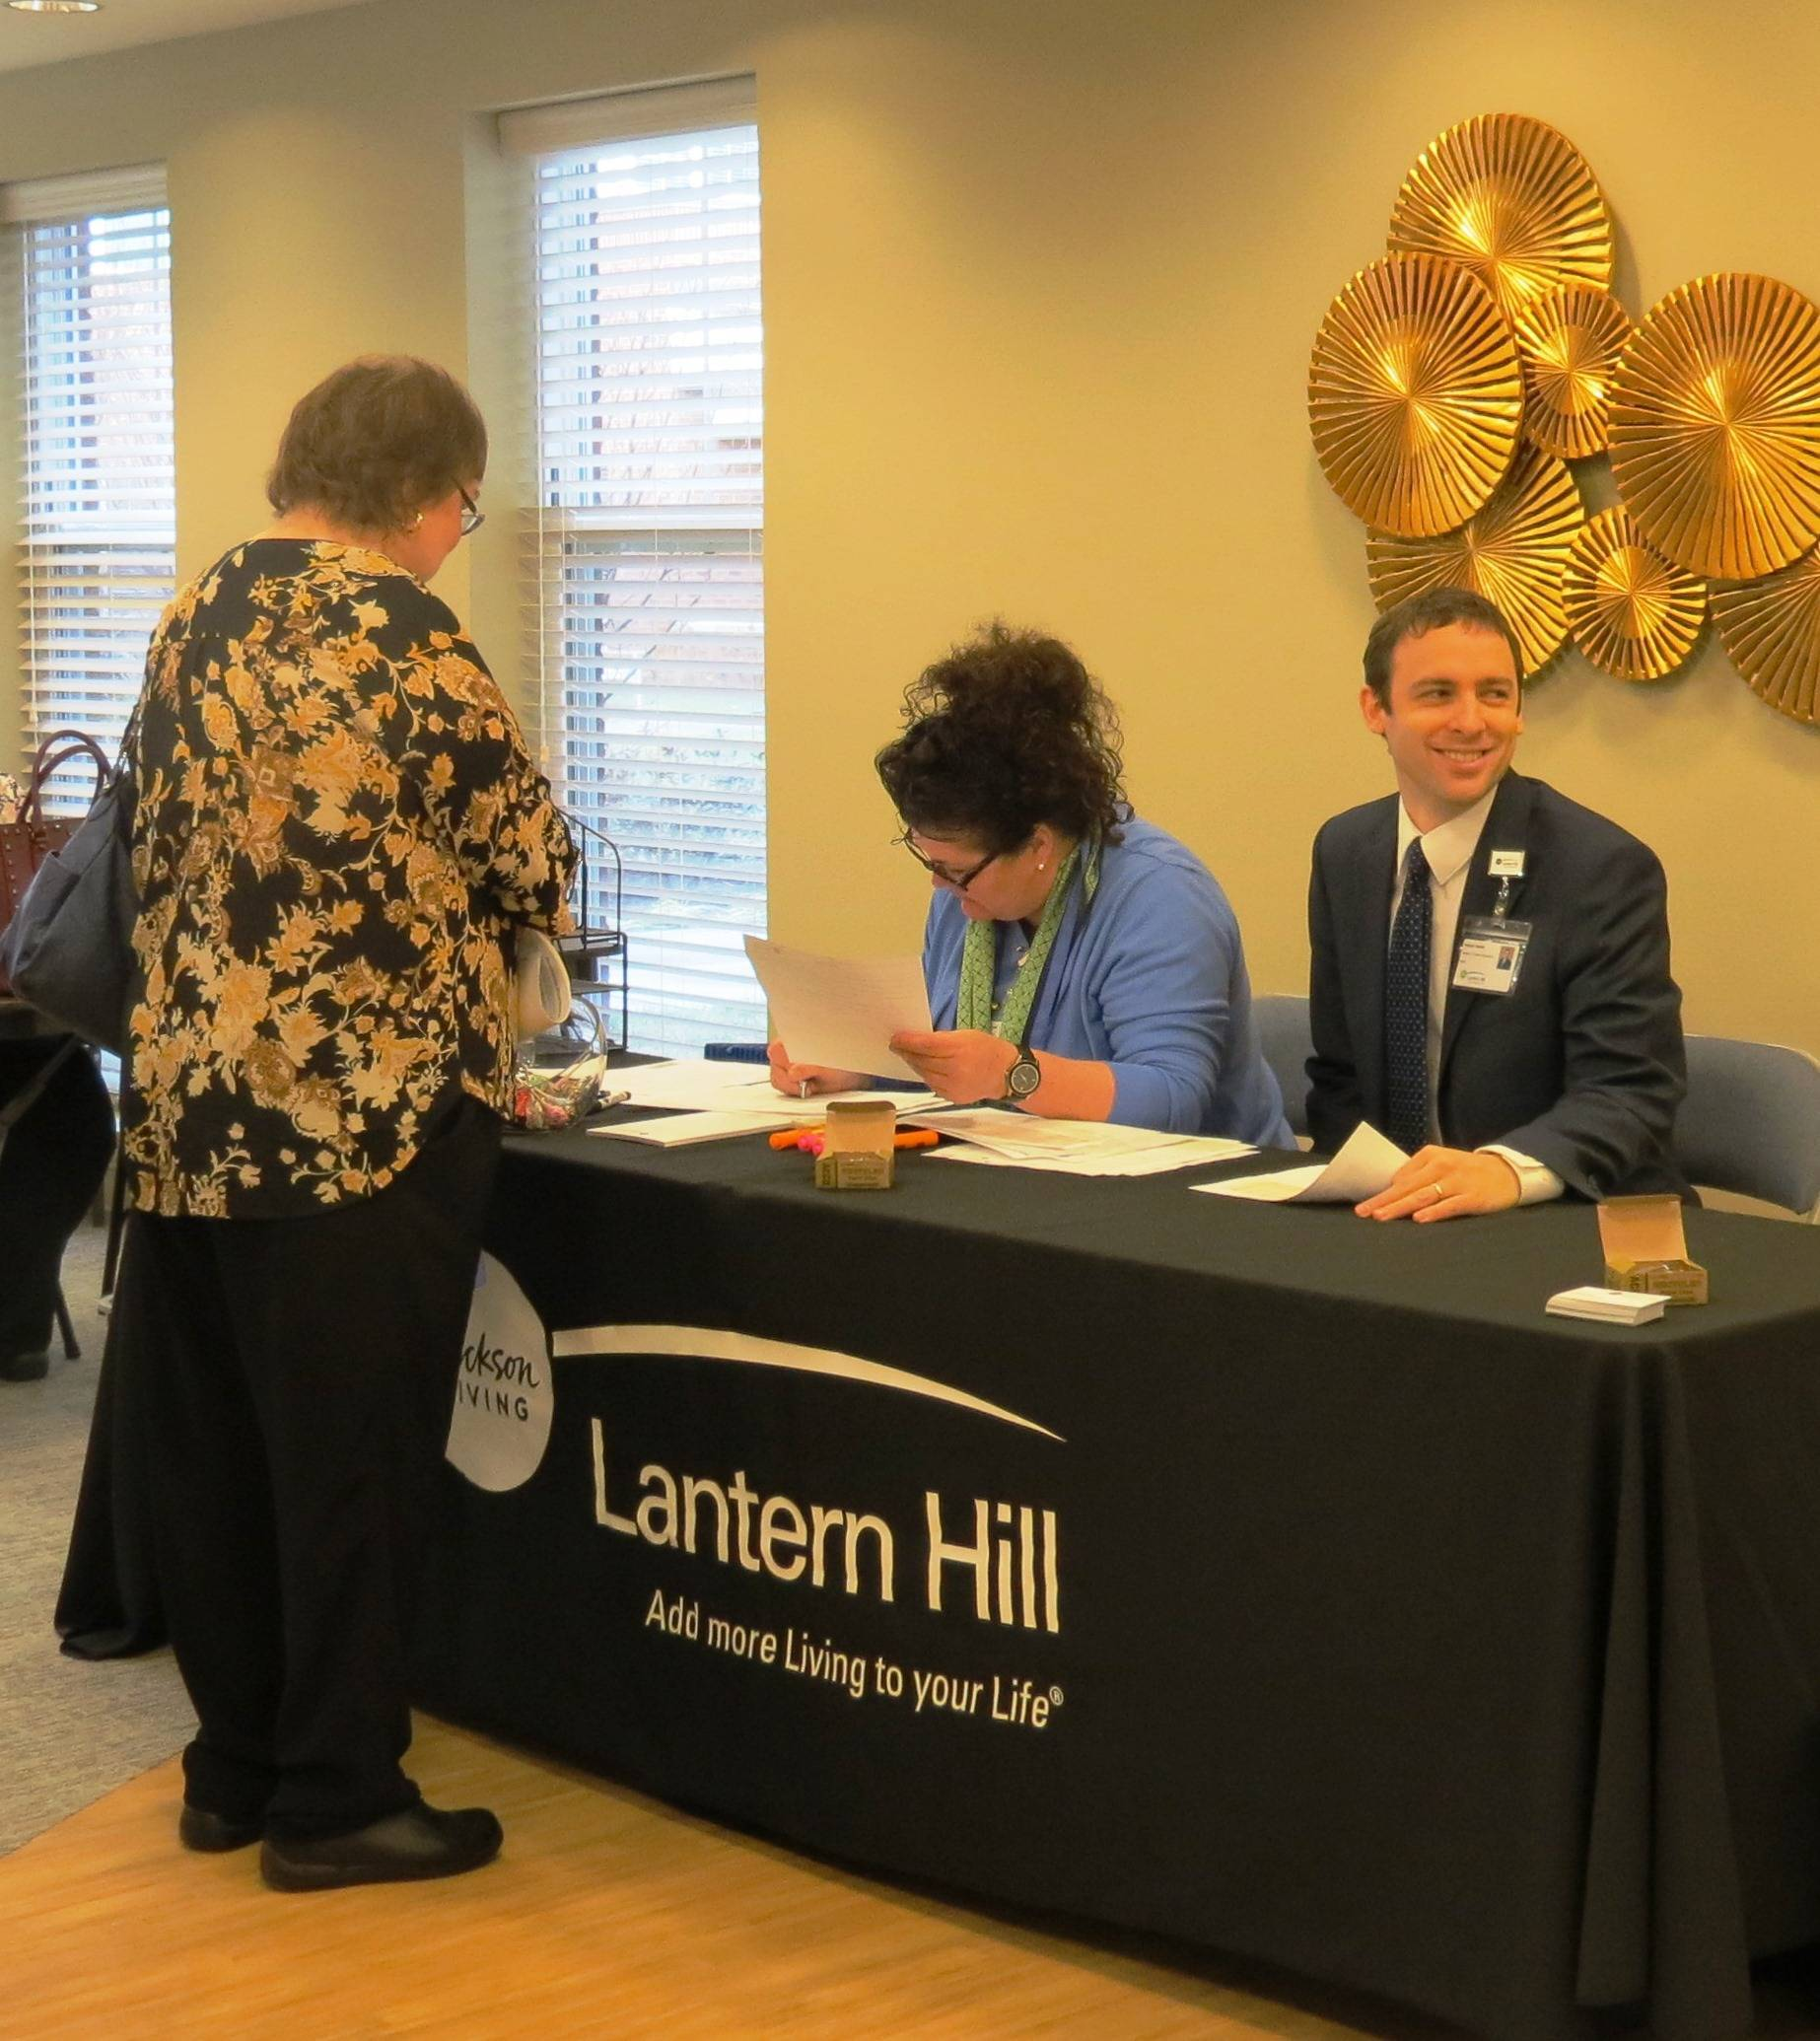 5e91bb95e11b48c0eca2_Lantern_Hill_Job_Fair.jpg